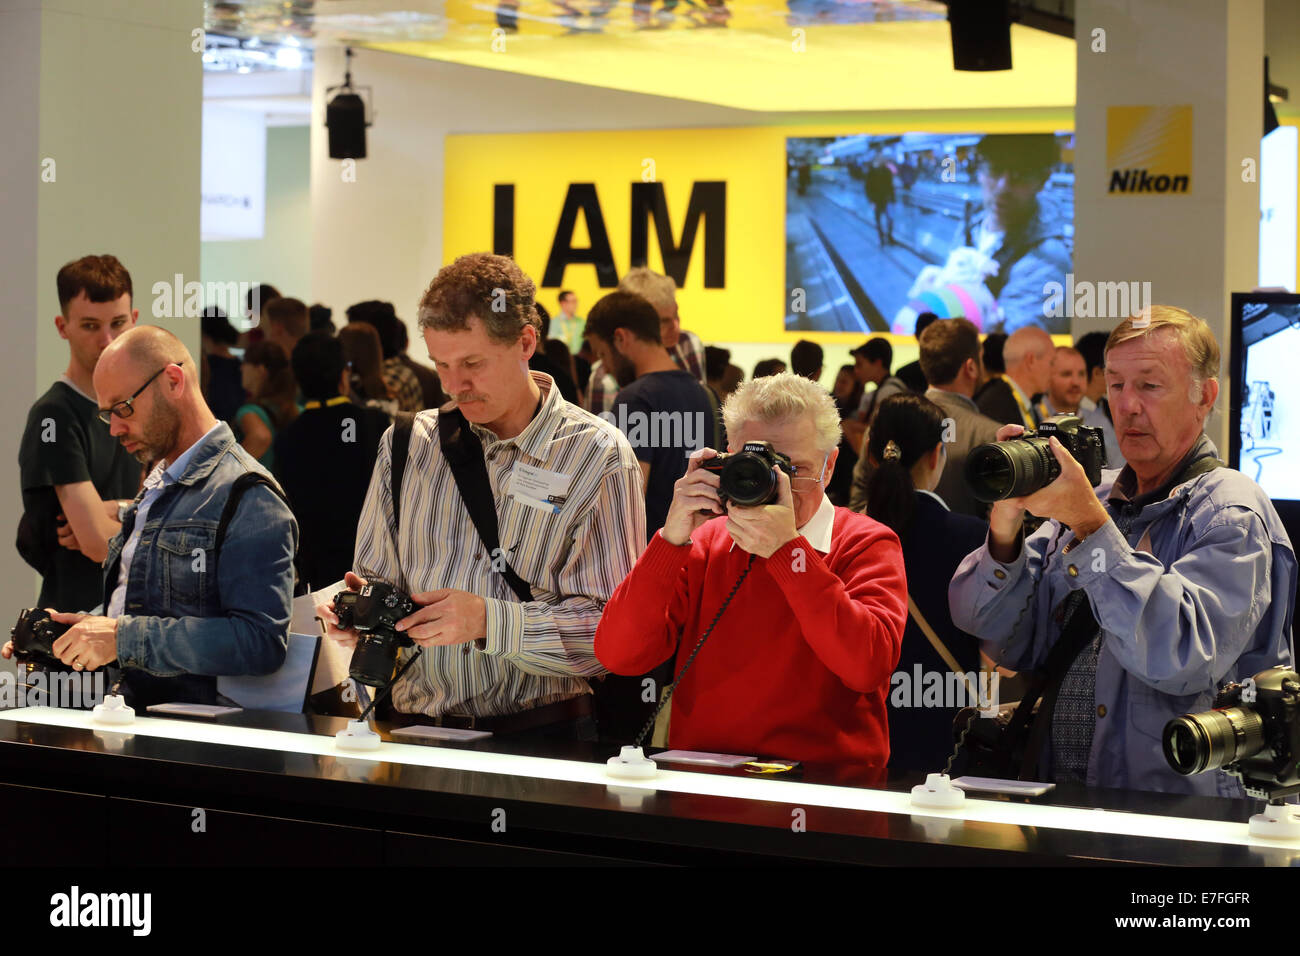 Photokina photography trade fair in Cologne, Germany. Visitors to the Nikon stand try out a selection of consumer - Stock Image